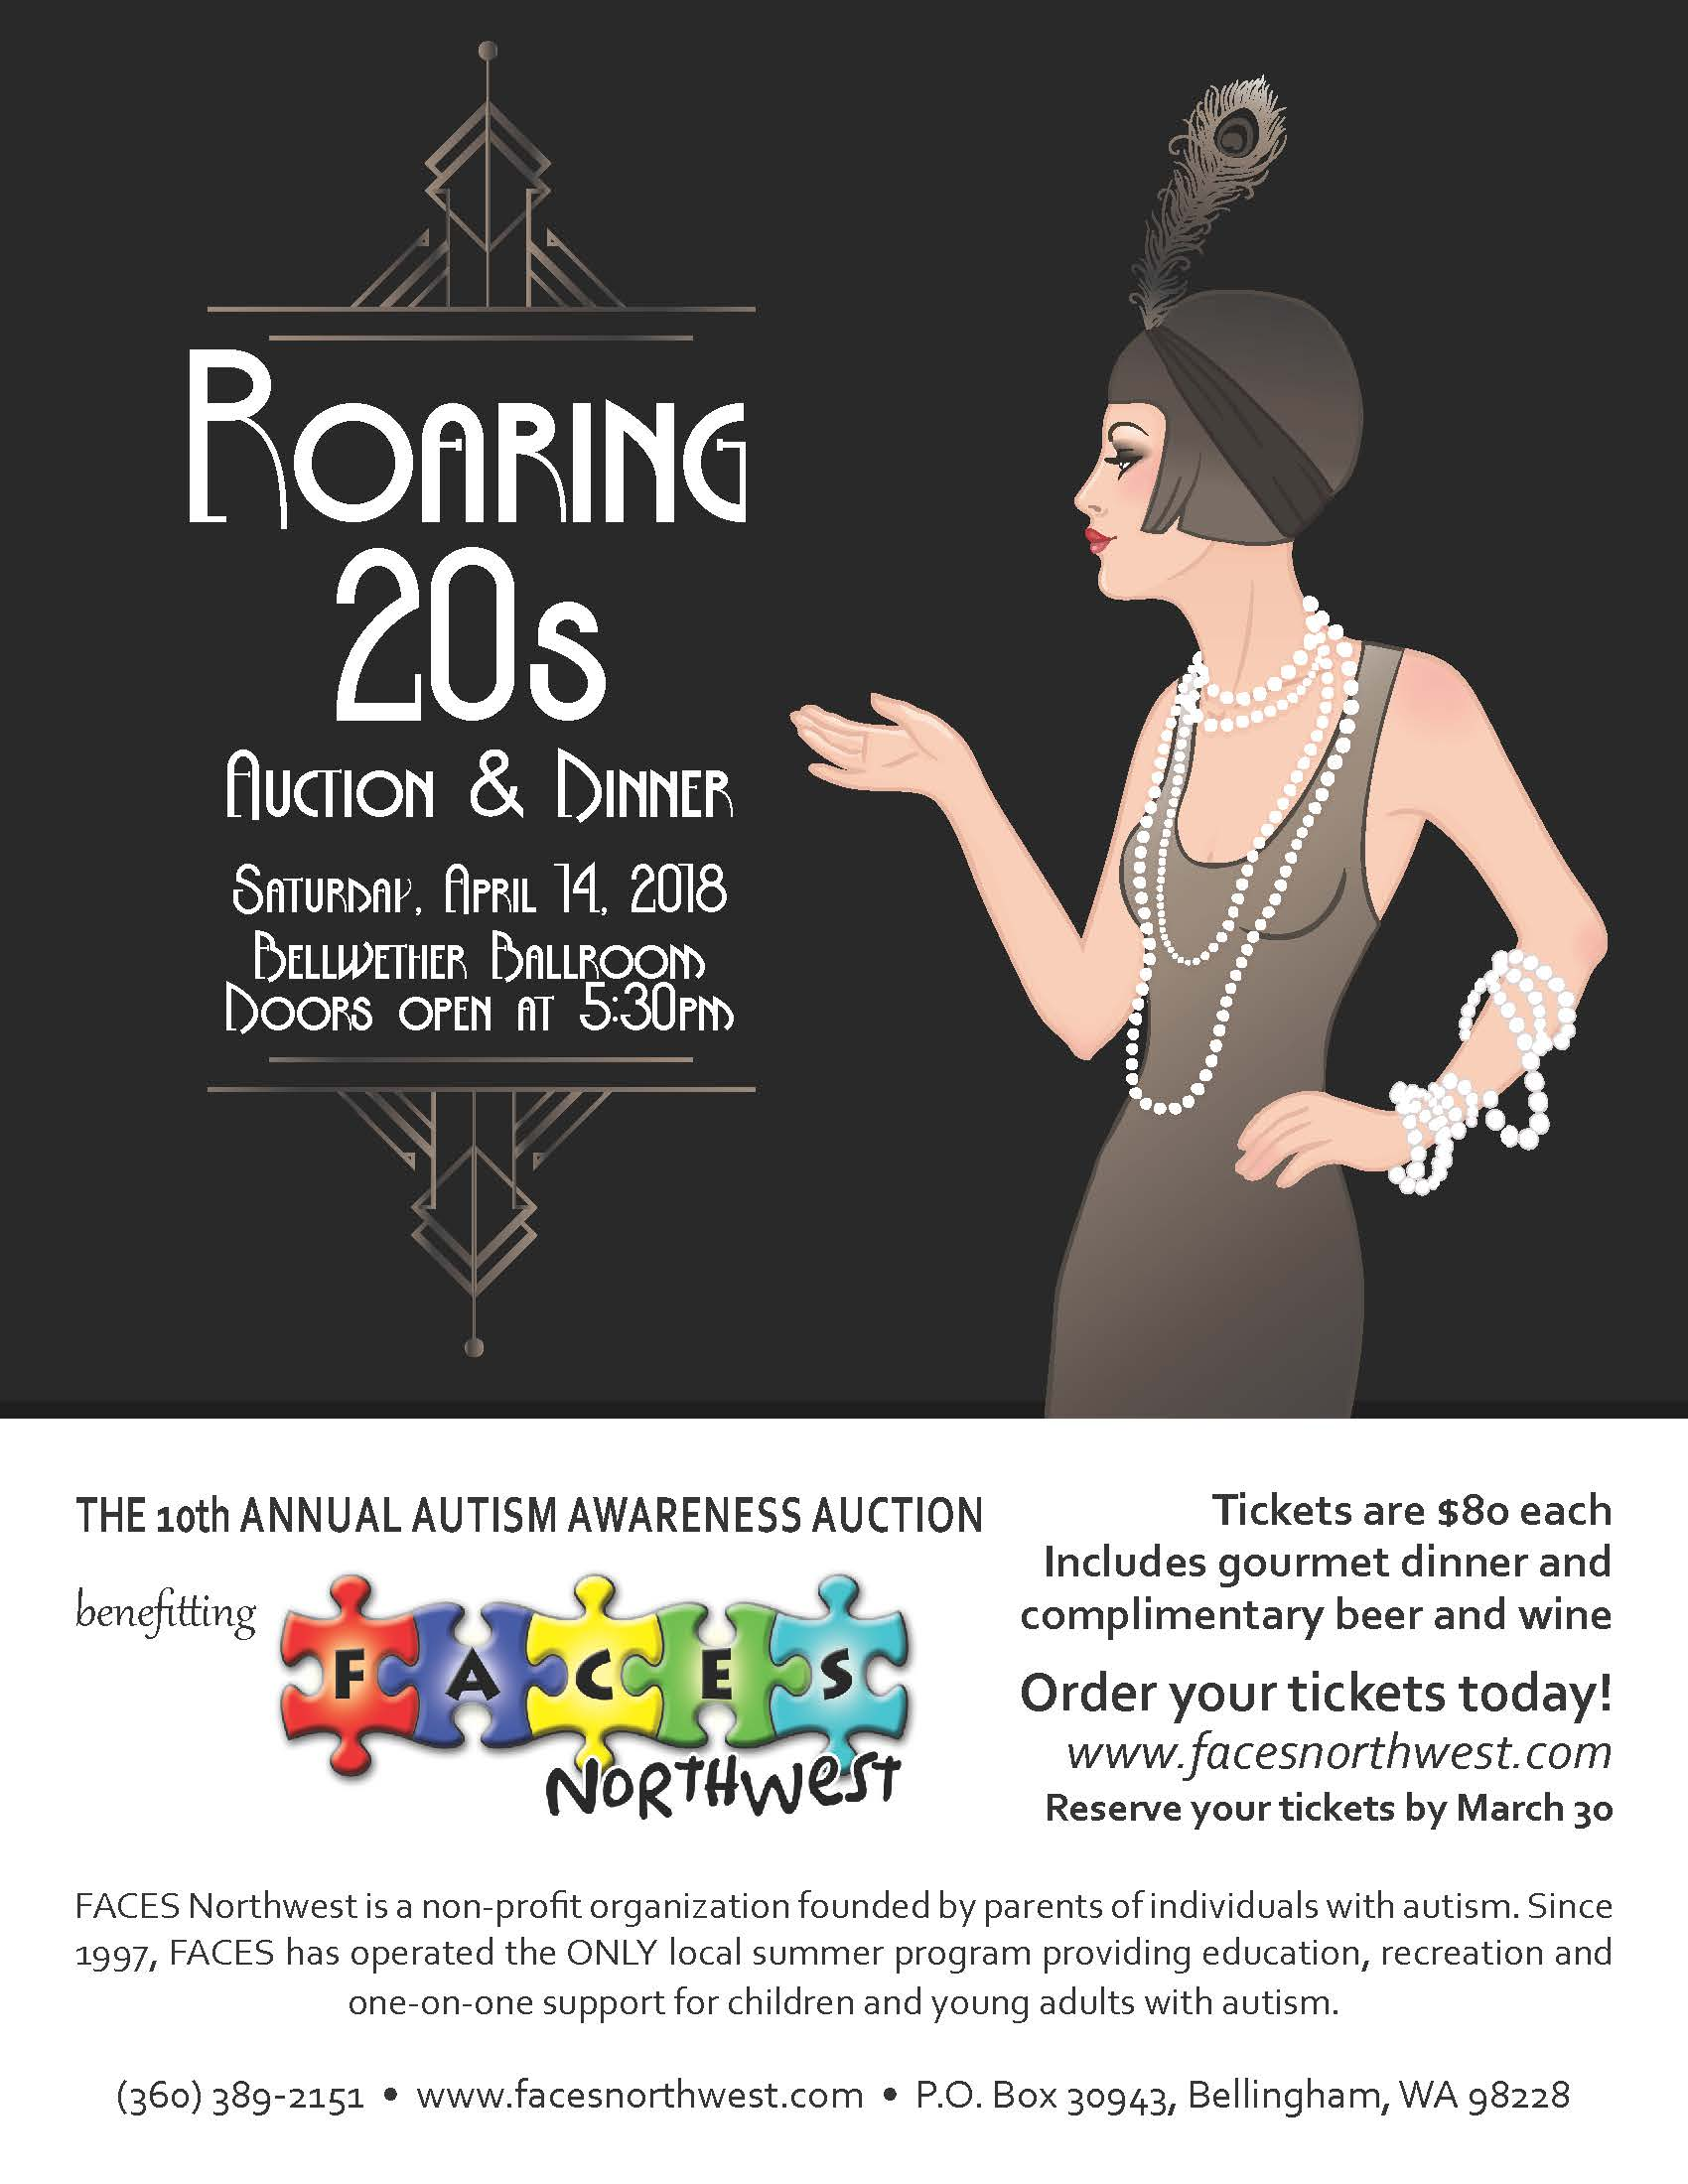 Roaring 20s Poster Faces Northwest